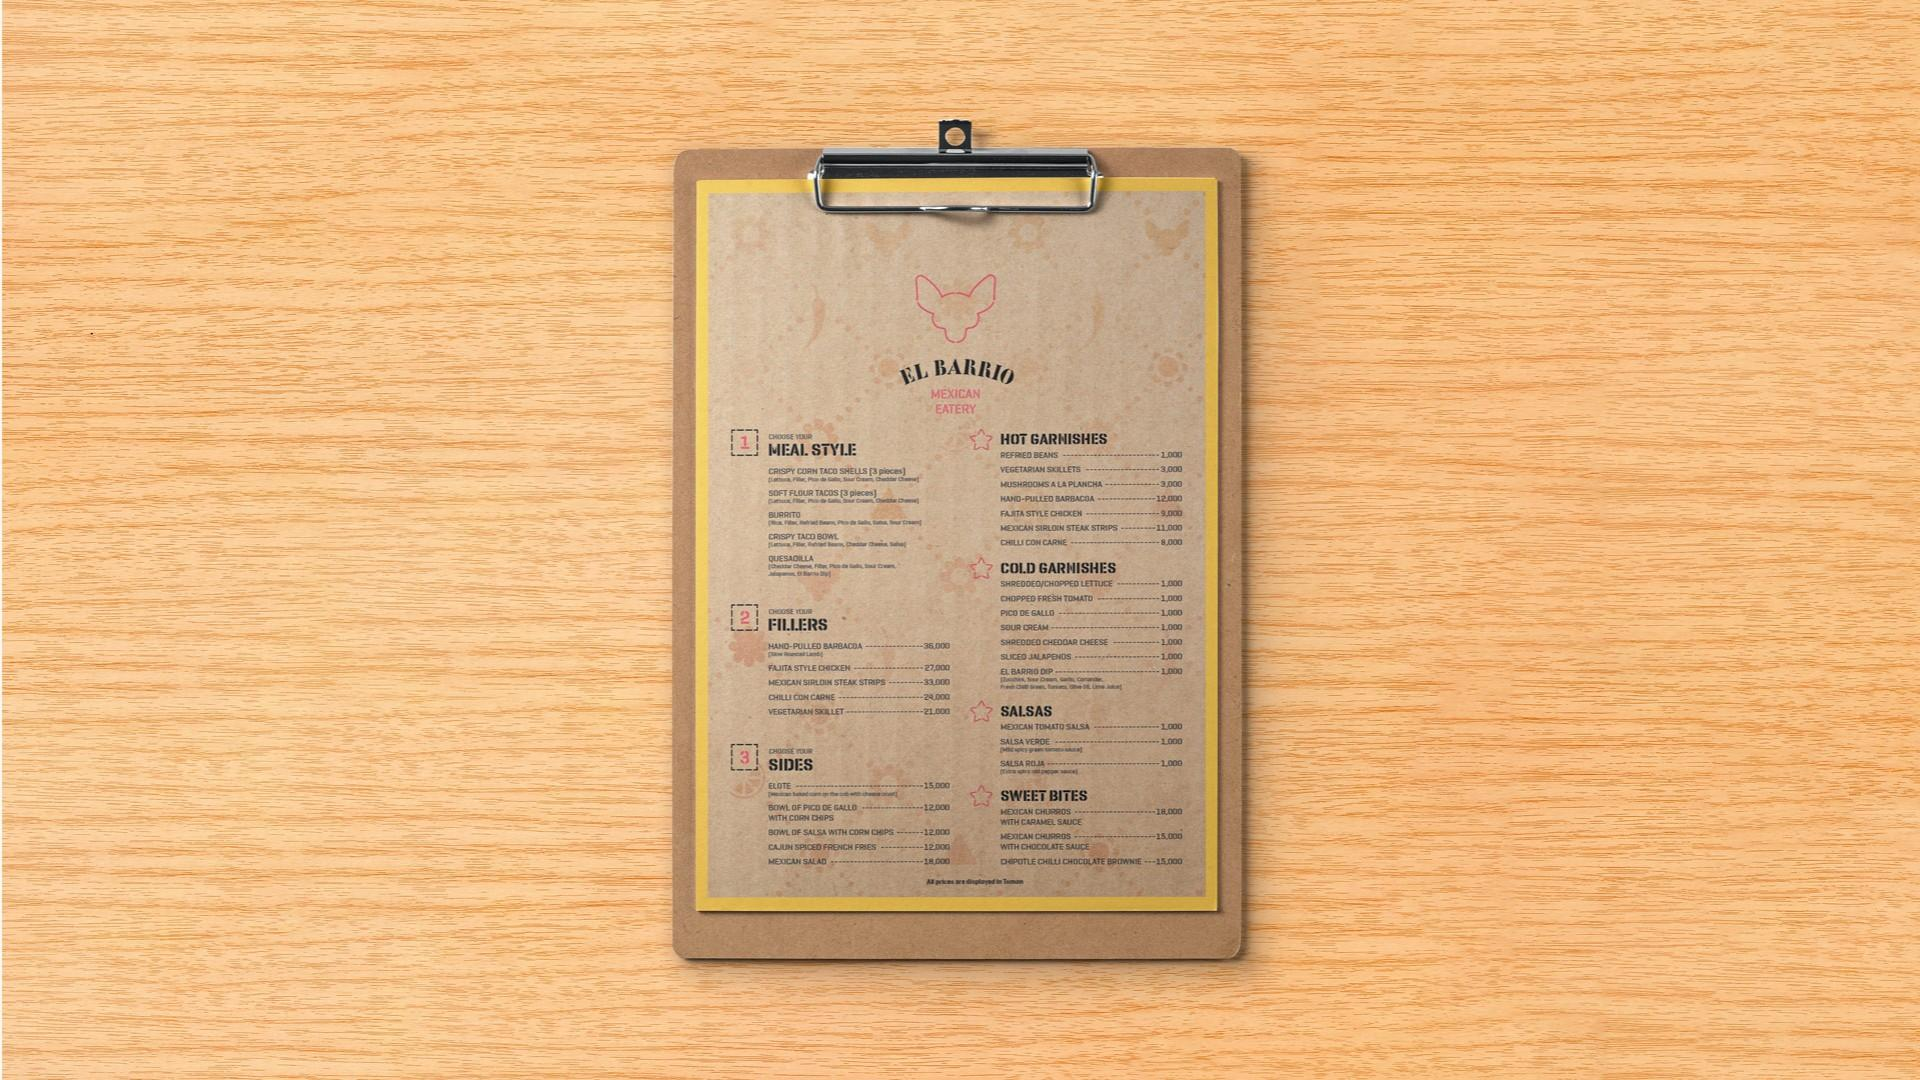 JOIE_BRANDS_EL_BARRIO_MENU_01